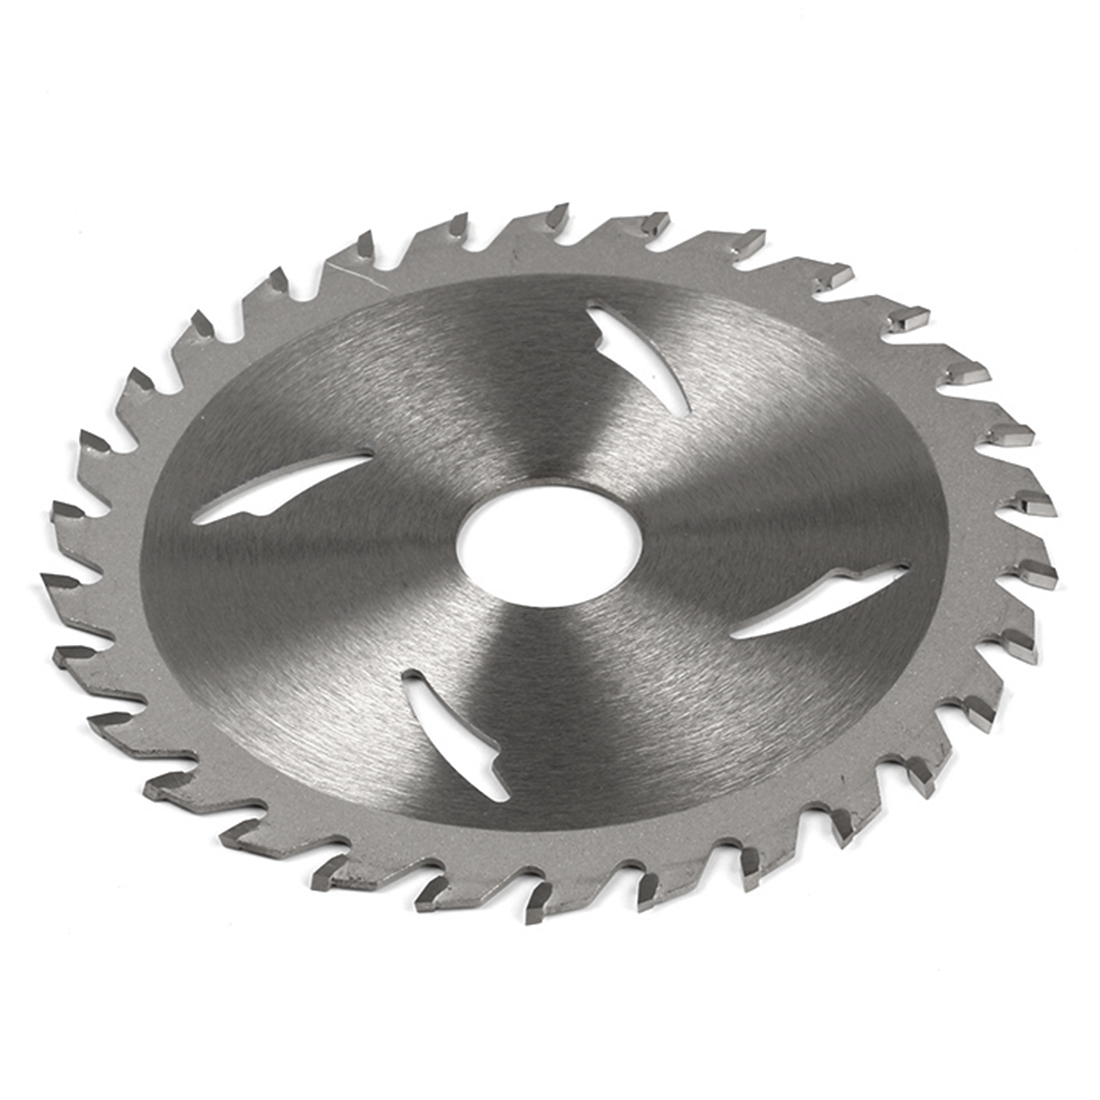 Circular Saw Saw Blade Cutting Piece 1PC 125/110mm*20mm 24T/30T/40T TCT Saw Blade Carbide Tipped For Decoration Wood Cutting